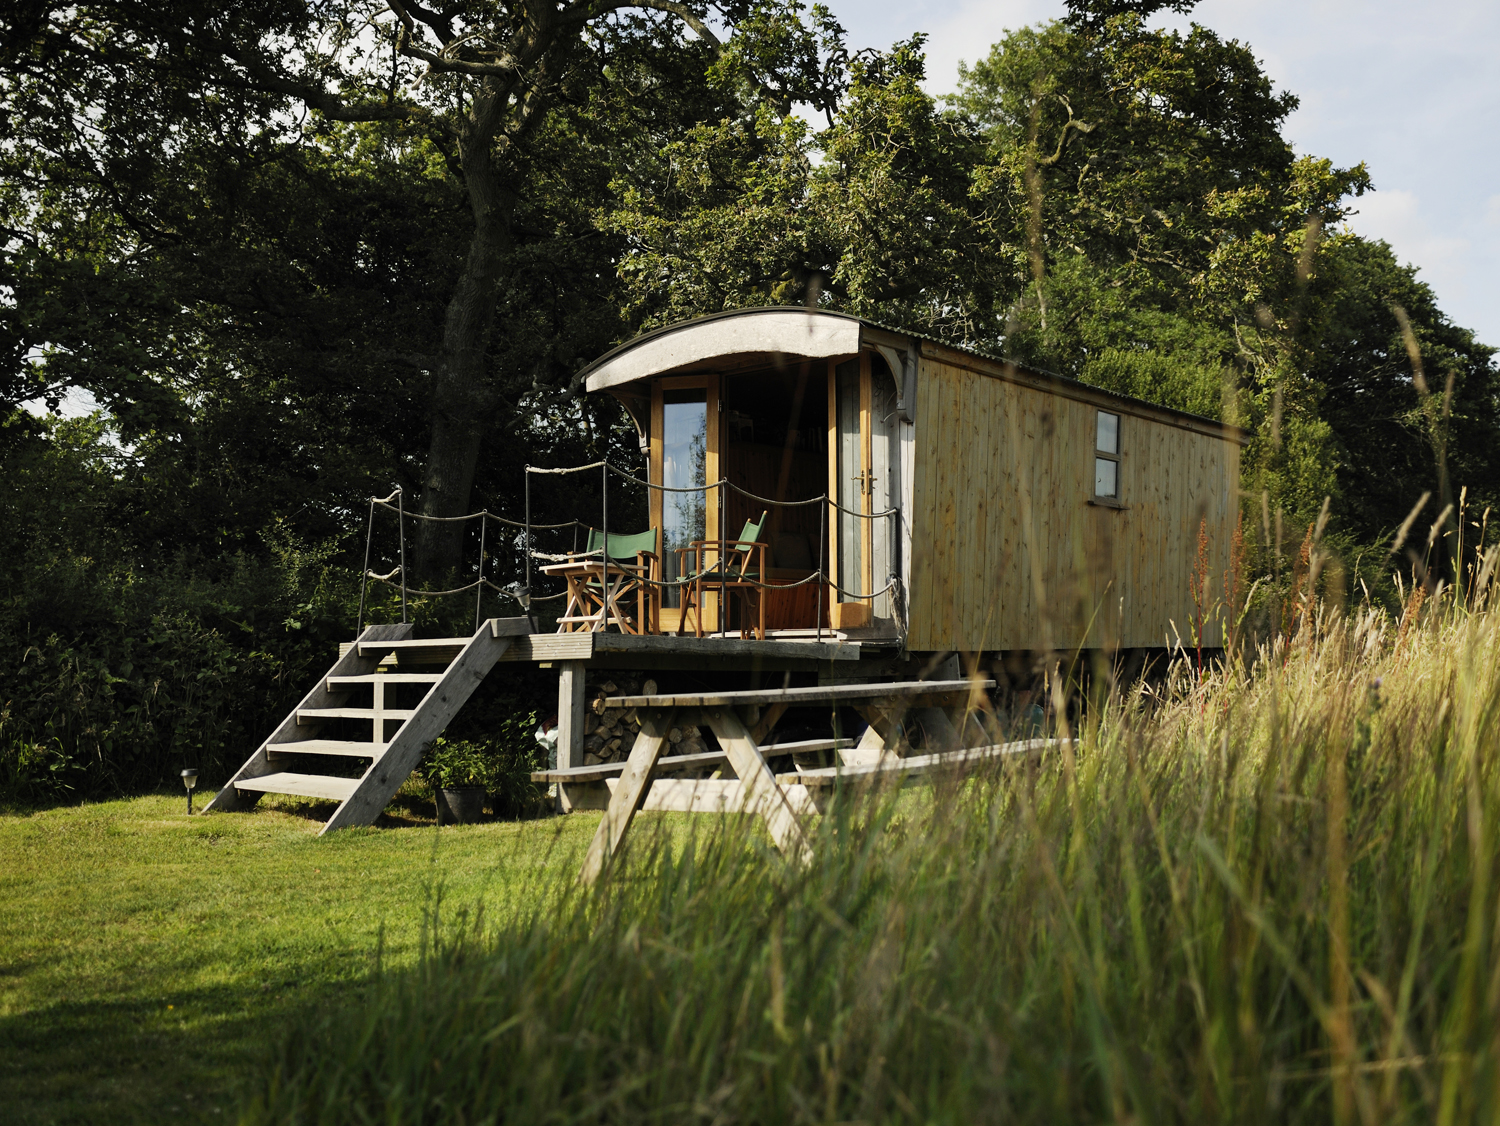 Shepherd's hut glamping & Saw Pit Wagon holiday accommodation